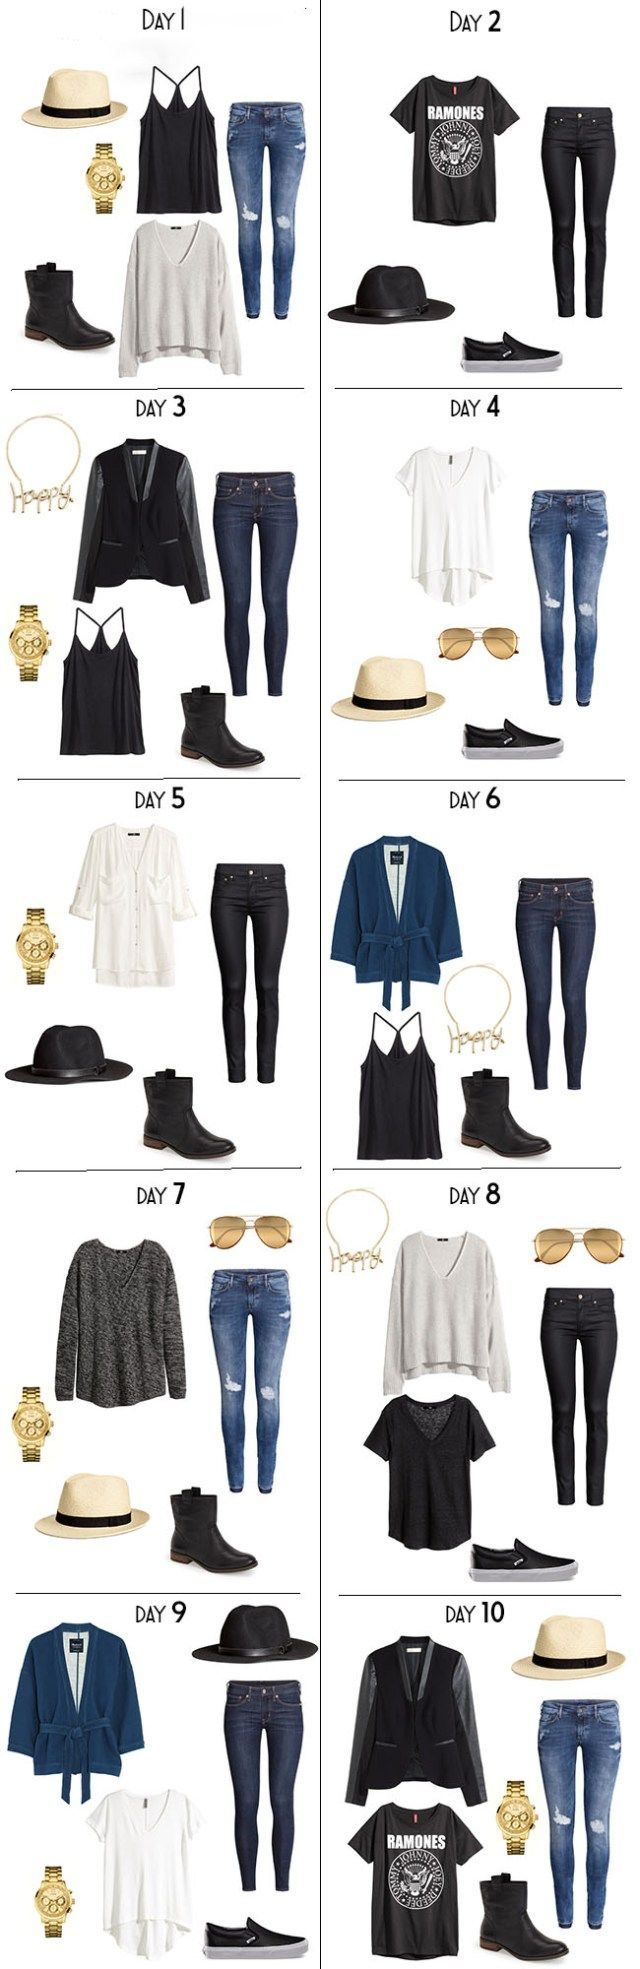 Packing Light Outfit Options for Transitional Weather #vacationoutfits